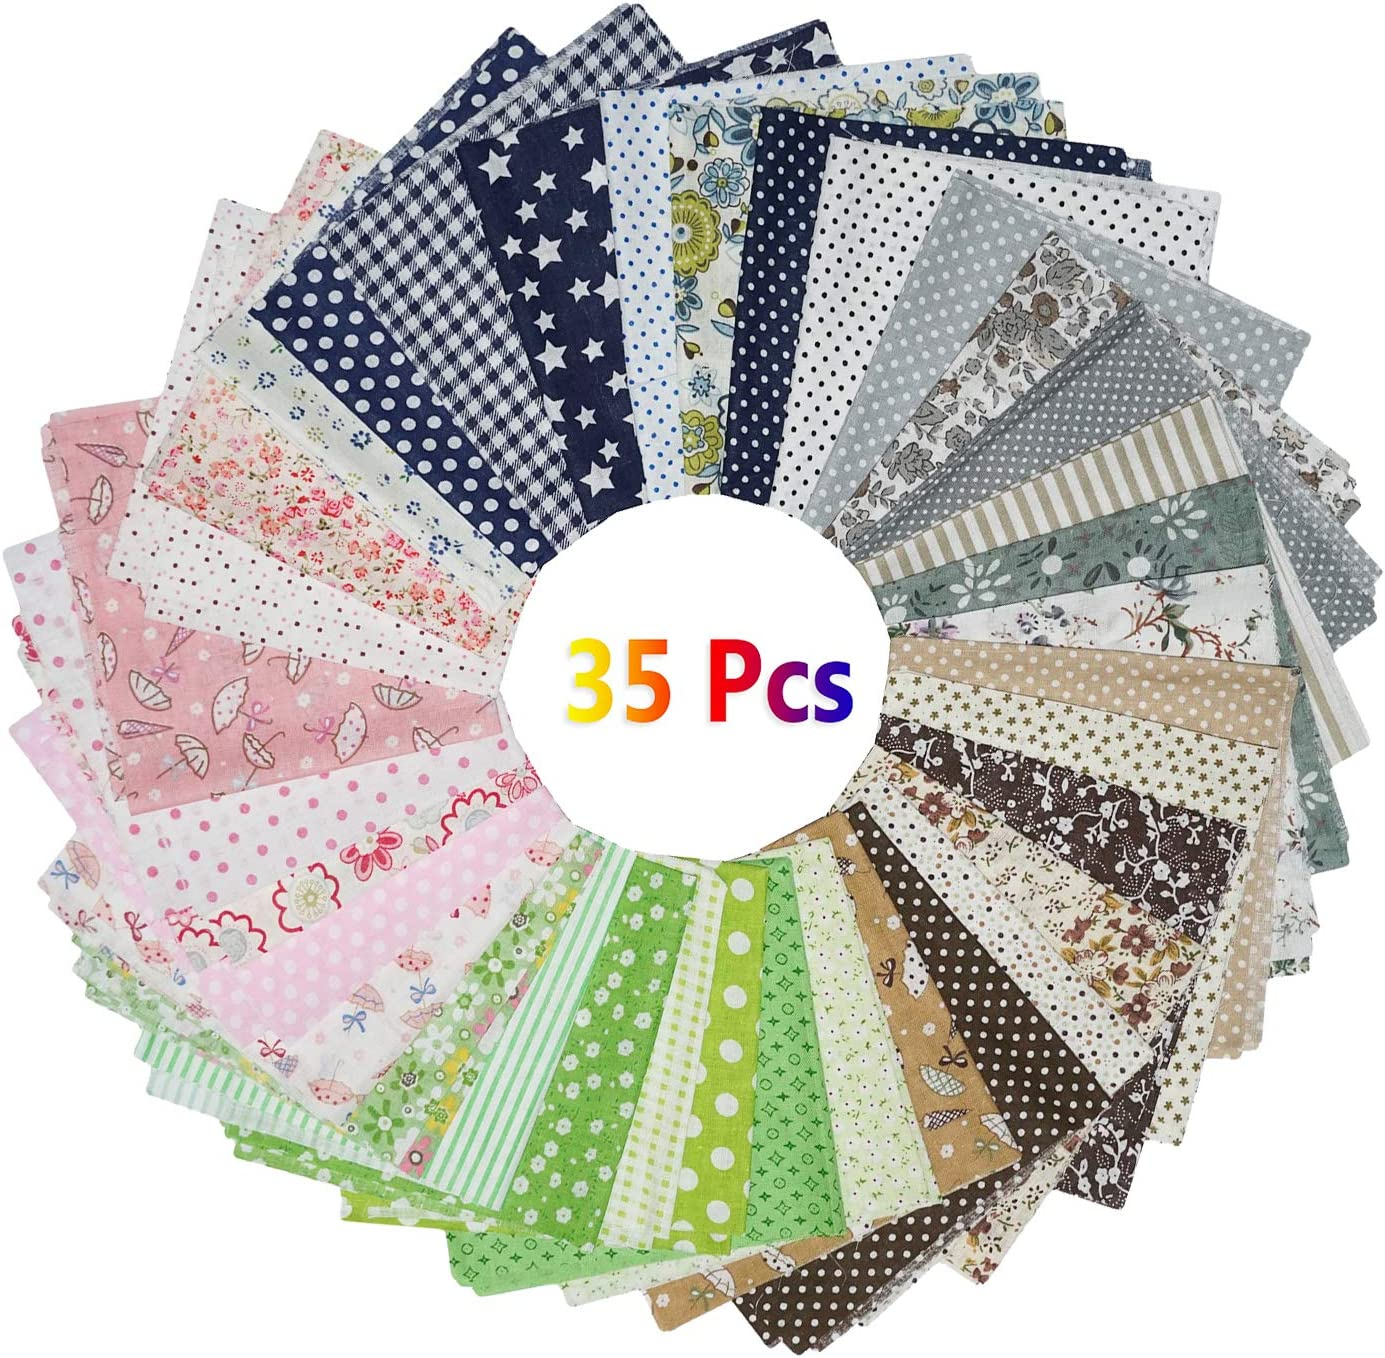 Patchwork Fabric with Flower Pattern Material for Quilting Floral Fabric TUOCO 35 Pcs DIY Cotton Fabric Patchwork Squares Fat Quarters Fabric Bundles Cotton Sewing Material Fabric for Sewing